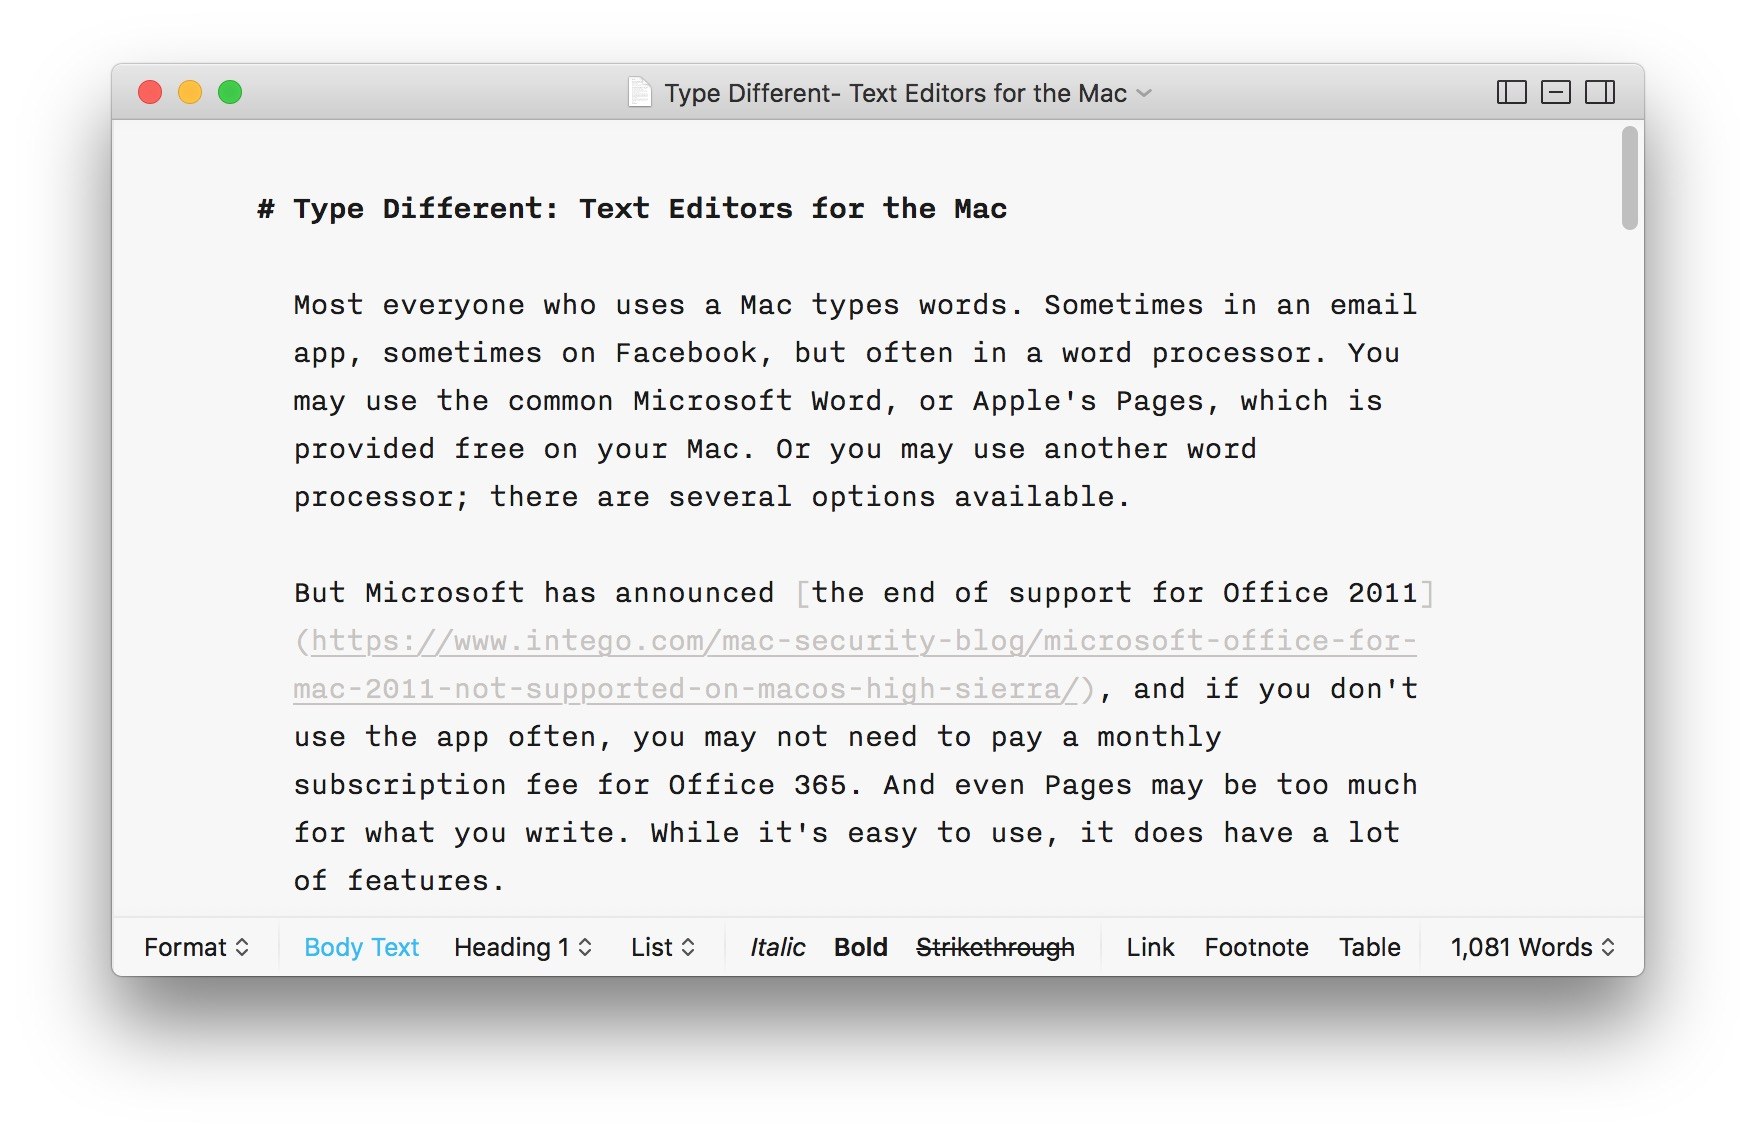 Type Different: Text Editors for the Mac | The Mac Security Blog